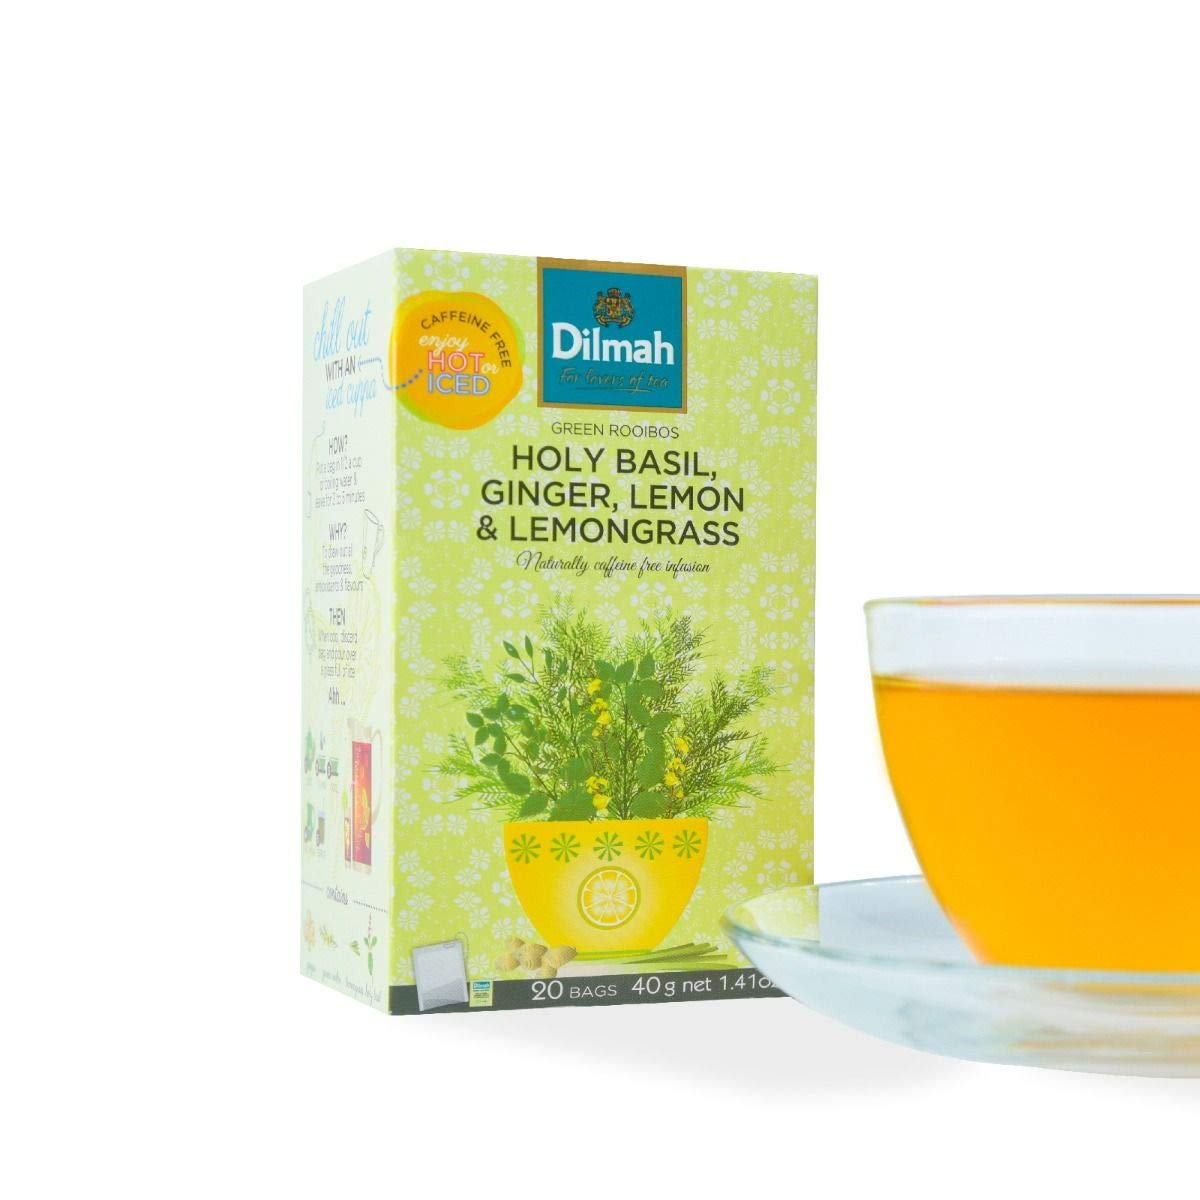 Dilmah Green Rooibos with Holy Basil Ginger Lemon & Lemongrass Tea - 20 Tea Bags X 8 Pack - Naturally Caffeine Free by Dilmah